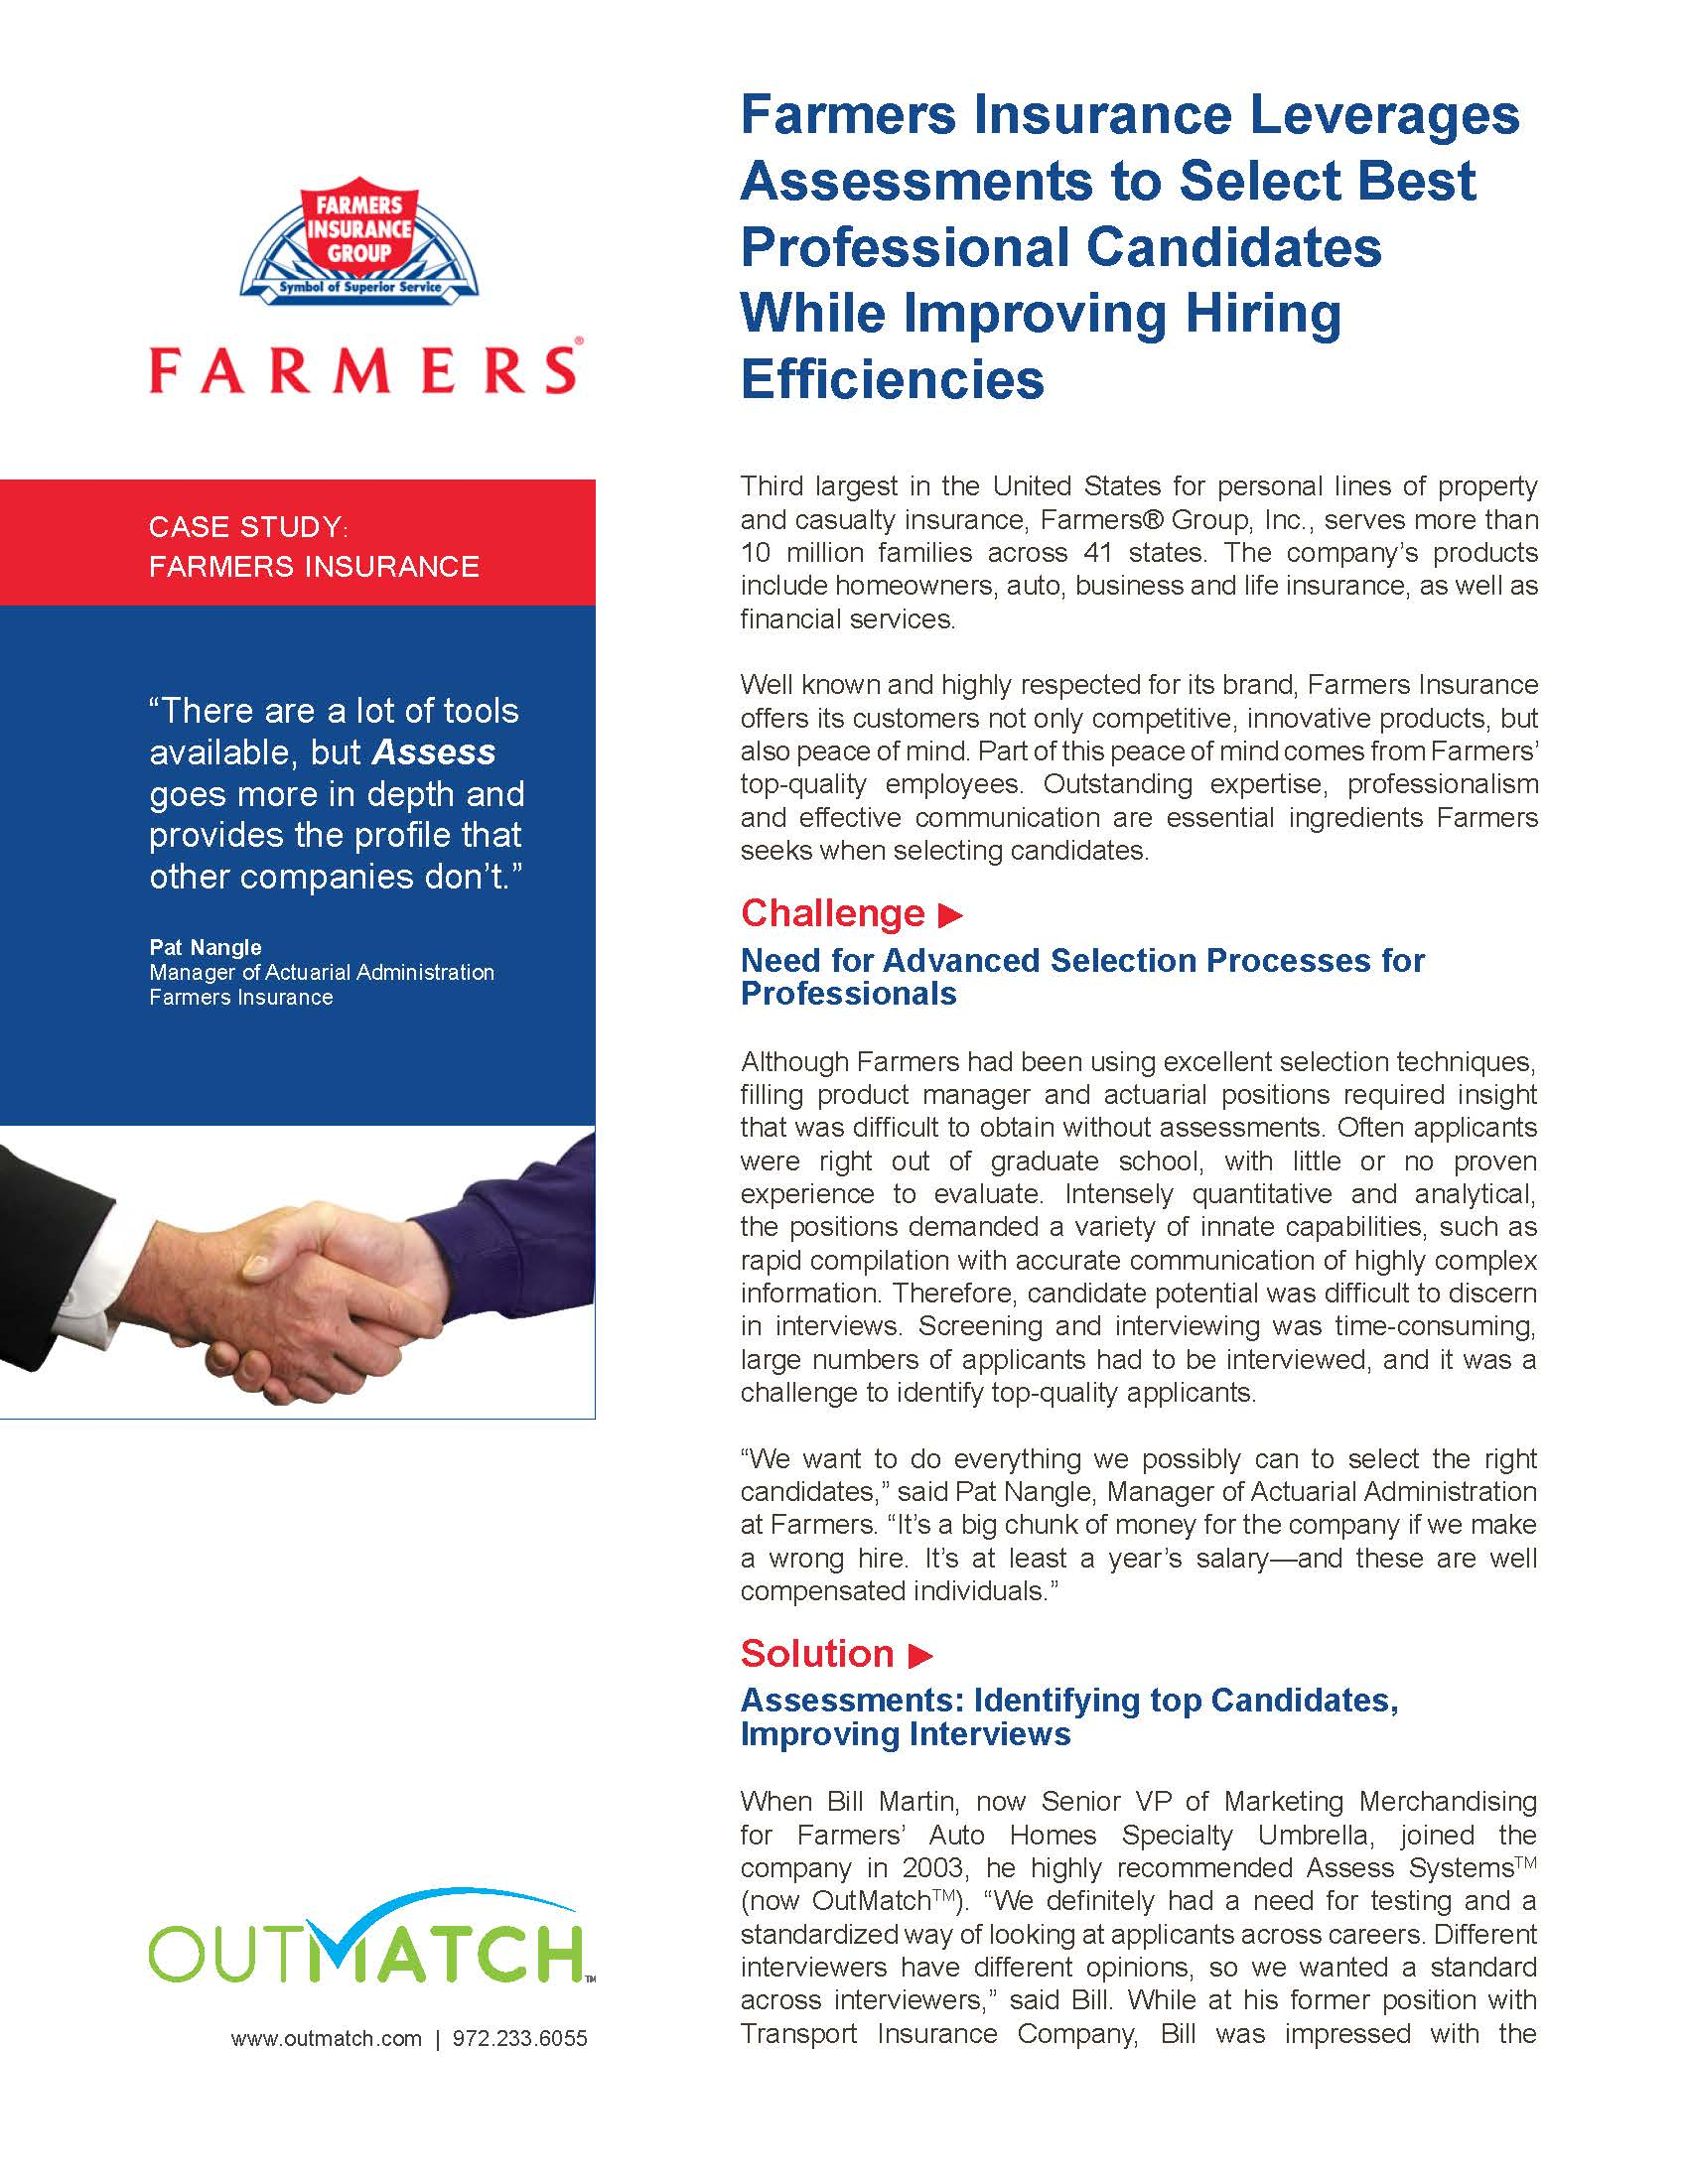 case-study-farmers-insurance_Page_1